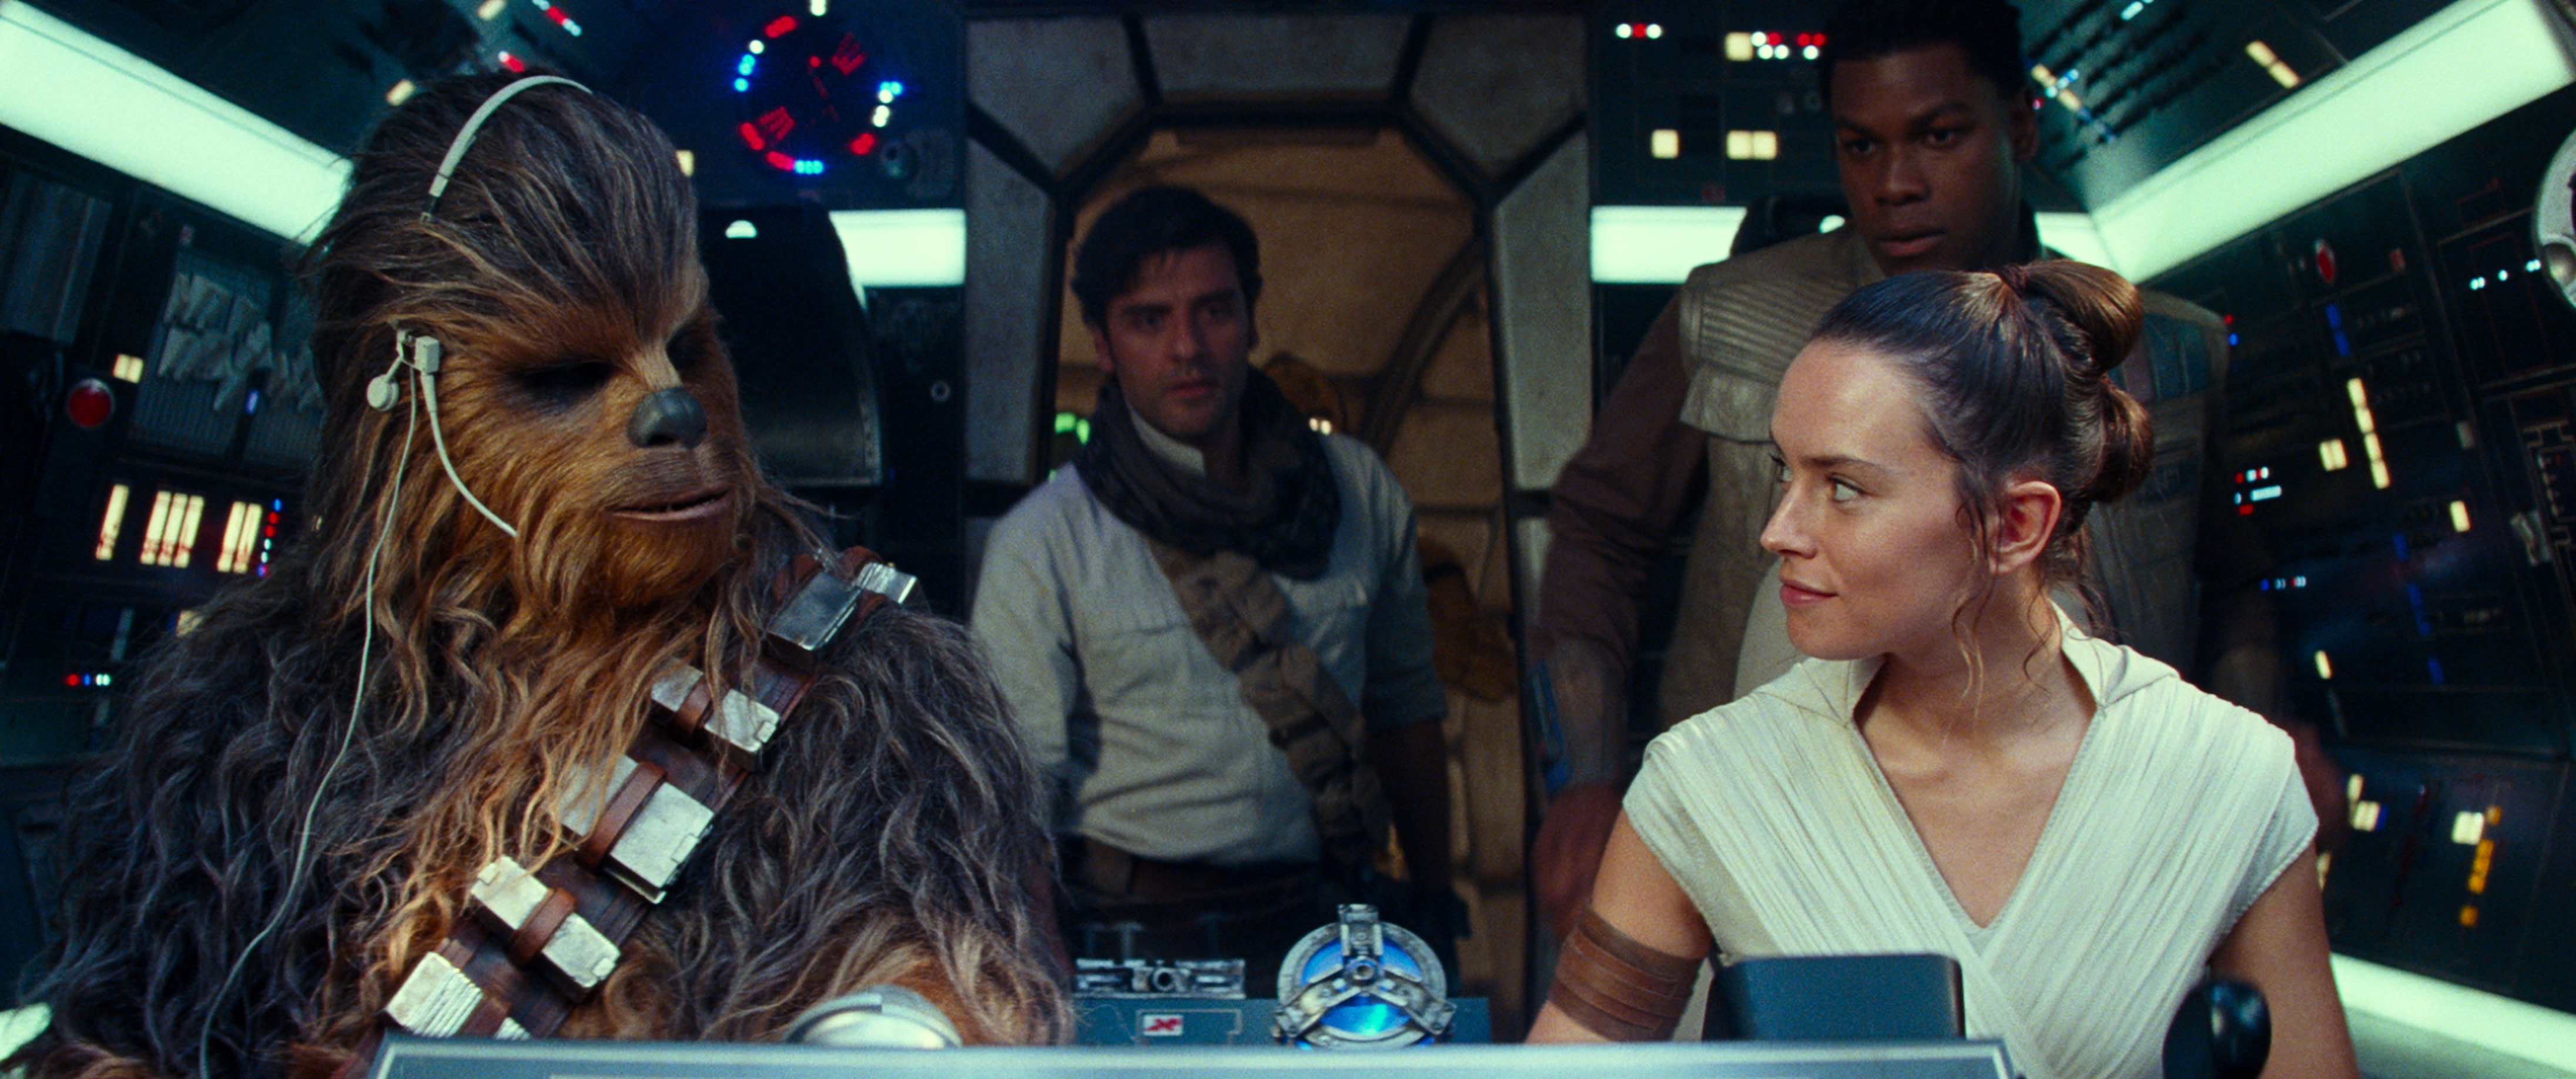 """This image released by Disney/Lucasfilm shows, from left, Joonas Suotamo as Chewbacca, Oscar Isaac as Poe Dameron, Daisy Ridley as Rey and John Boyega as Finn in a scene from """"Star Wars: The Rise of Skywalker."""" (Disney/Lucasfilm Ltd. via AP)"""